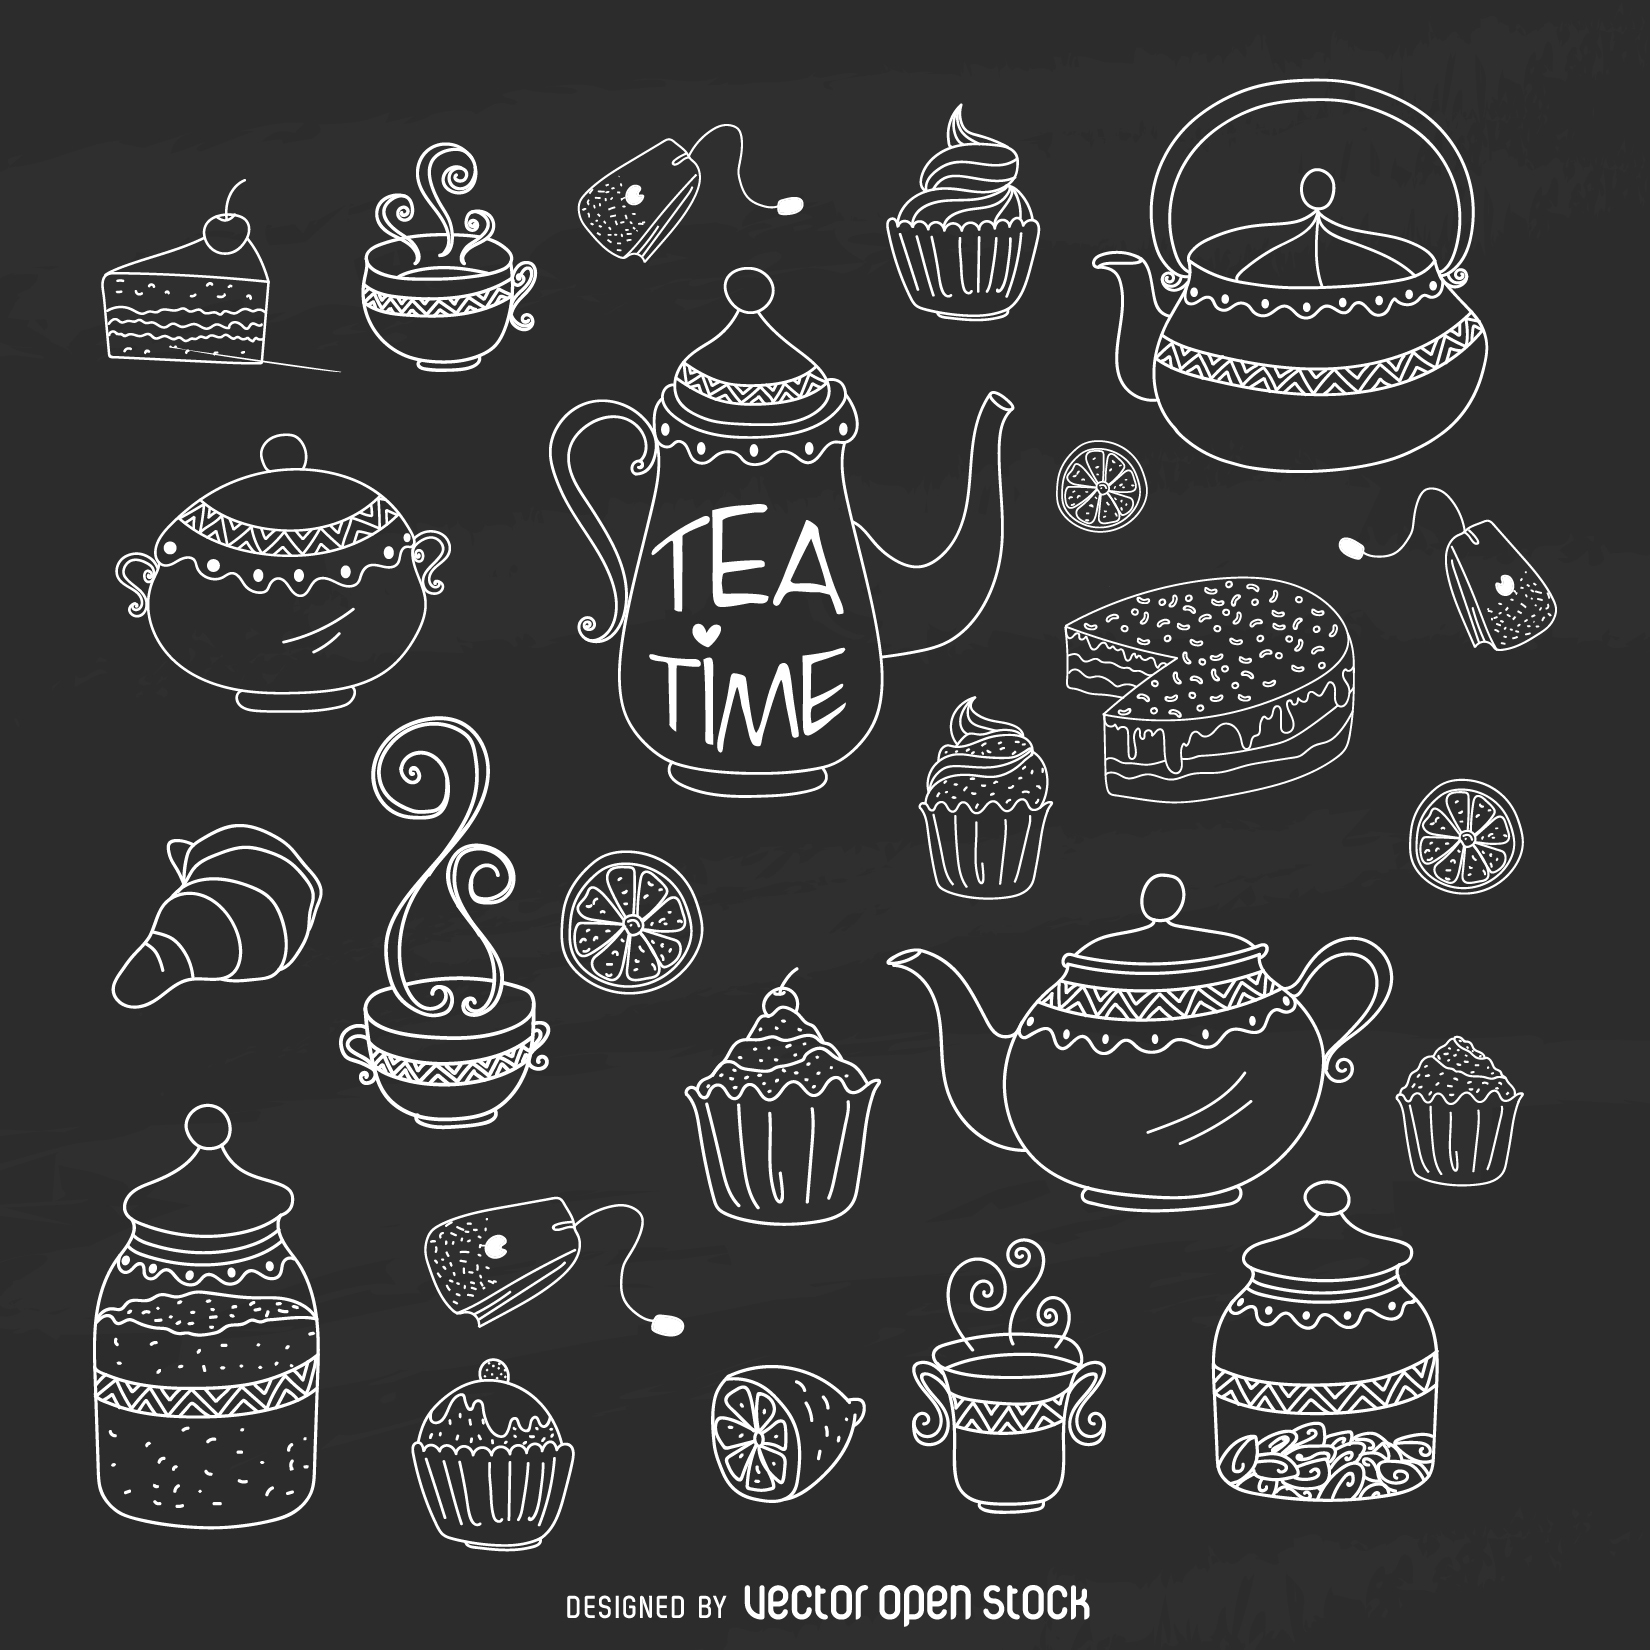 Chalk Hand Drawn Tea Time Kit Free Vector How To Draw Hands Tea Time Tea